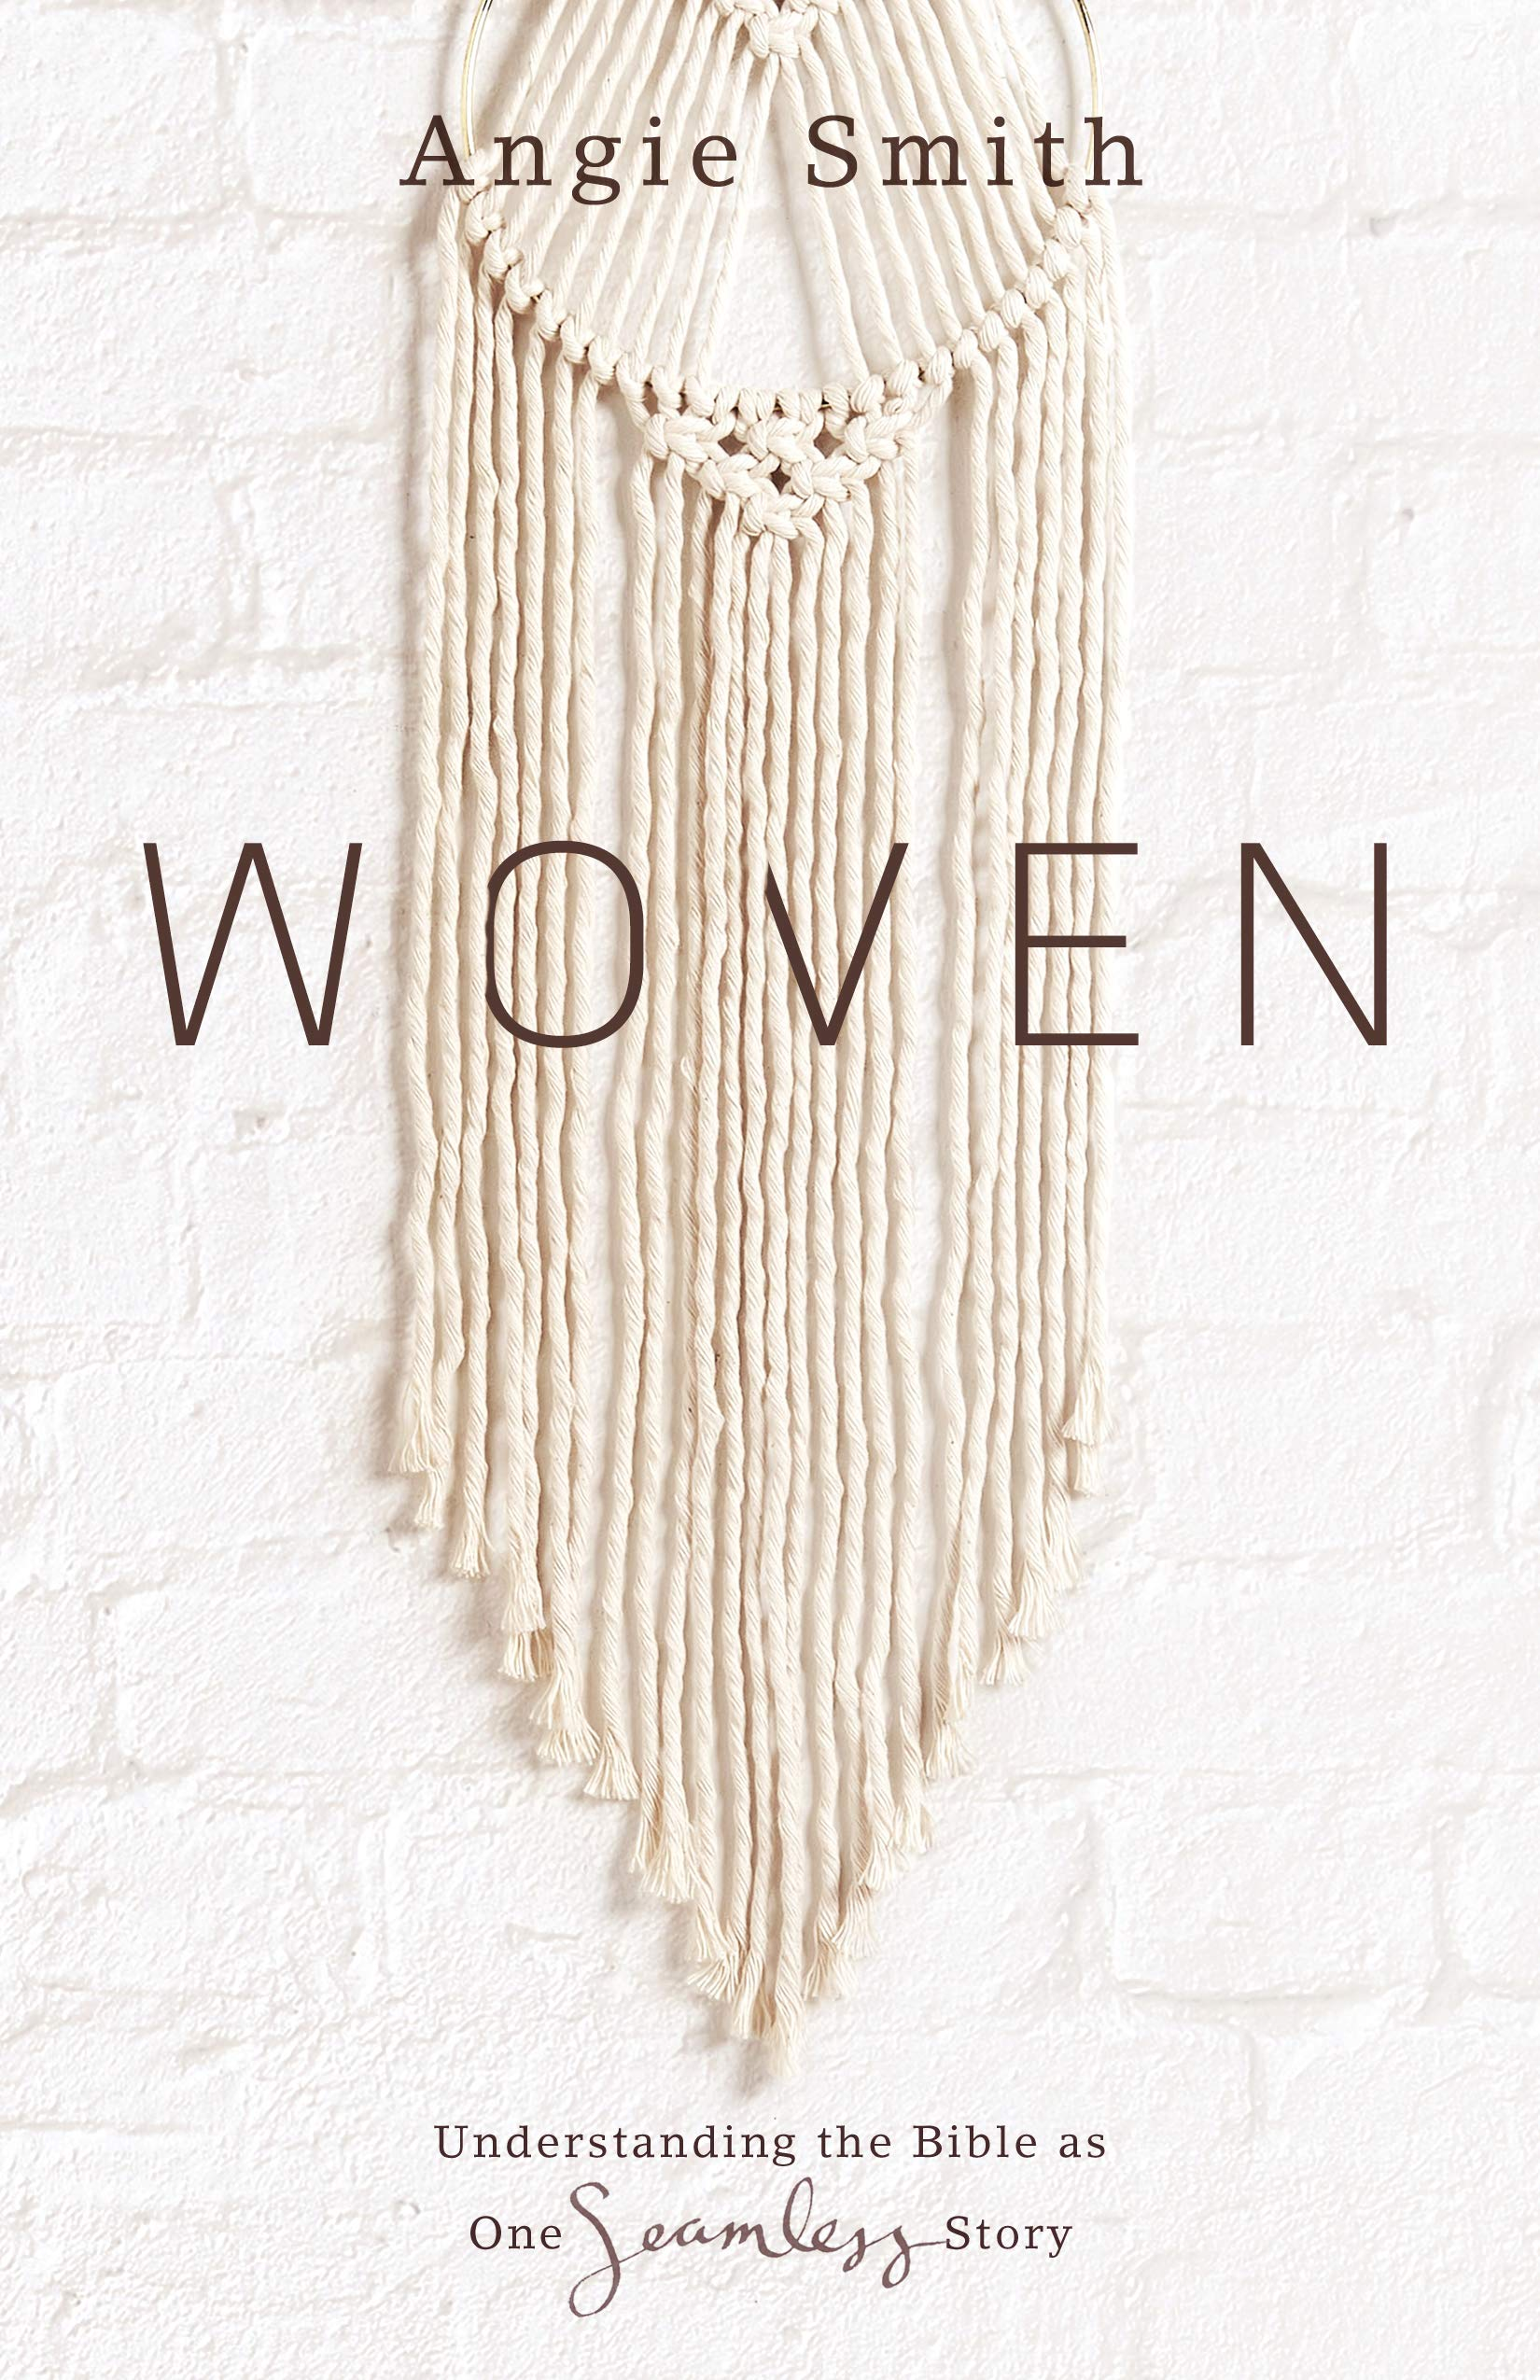 Woven: Understanding the Bible as One Seamless Story